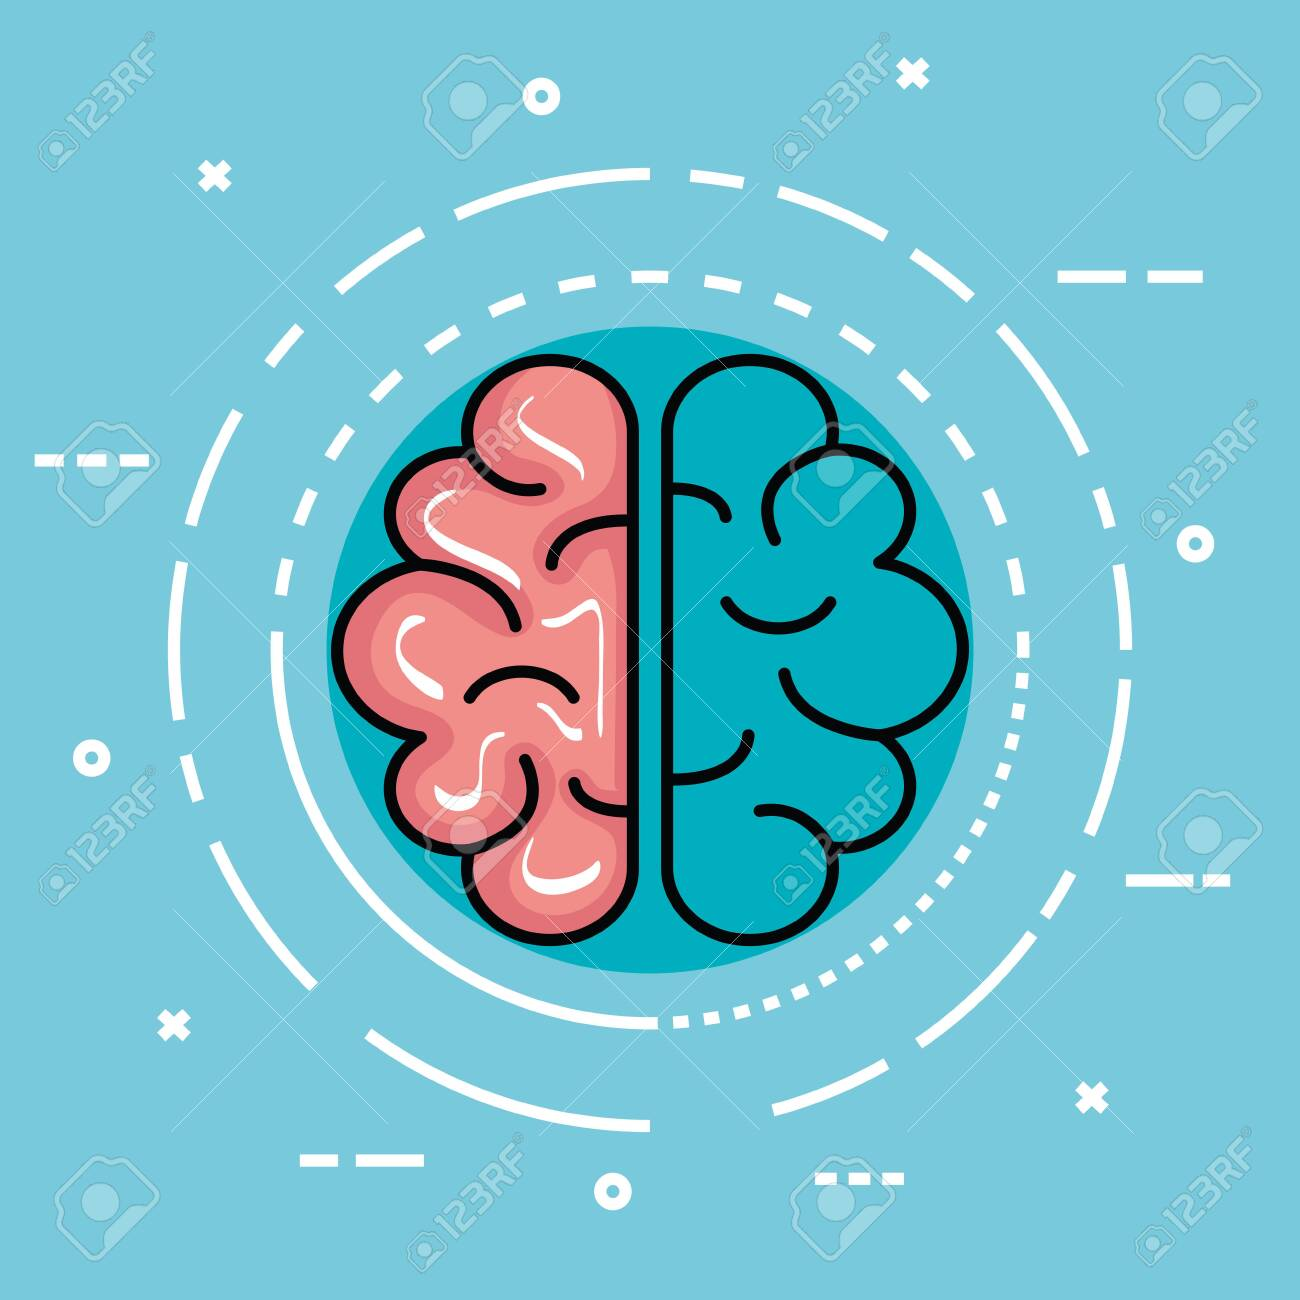 label with health brain and creative mind vector illustration - 133840040